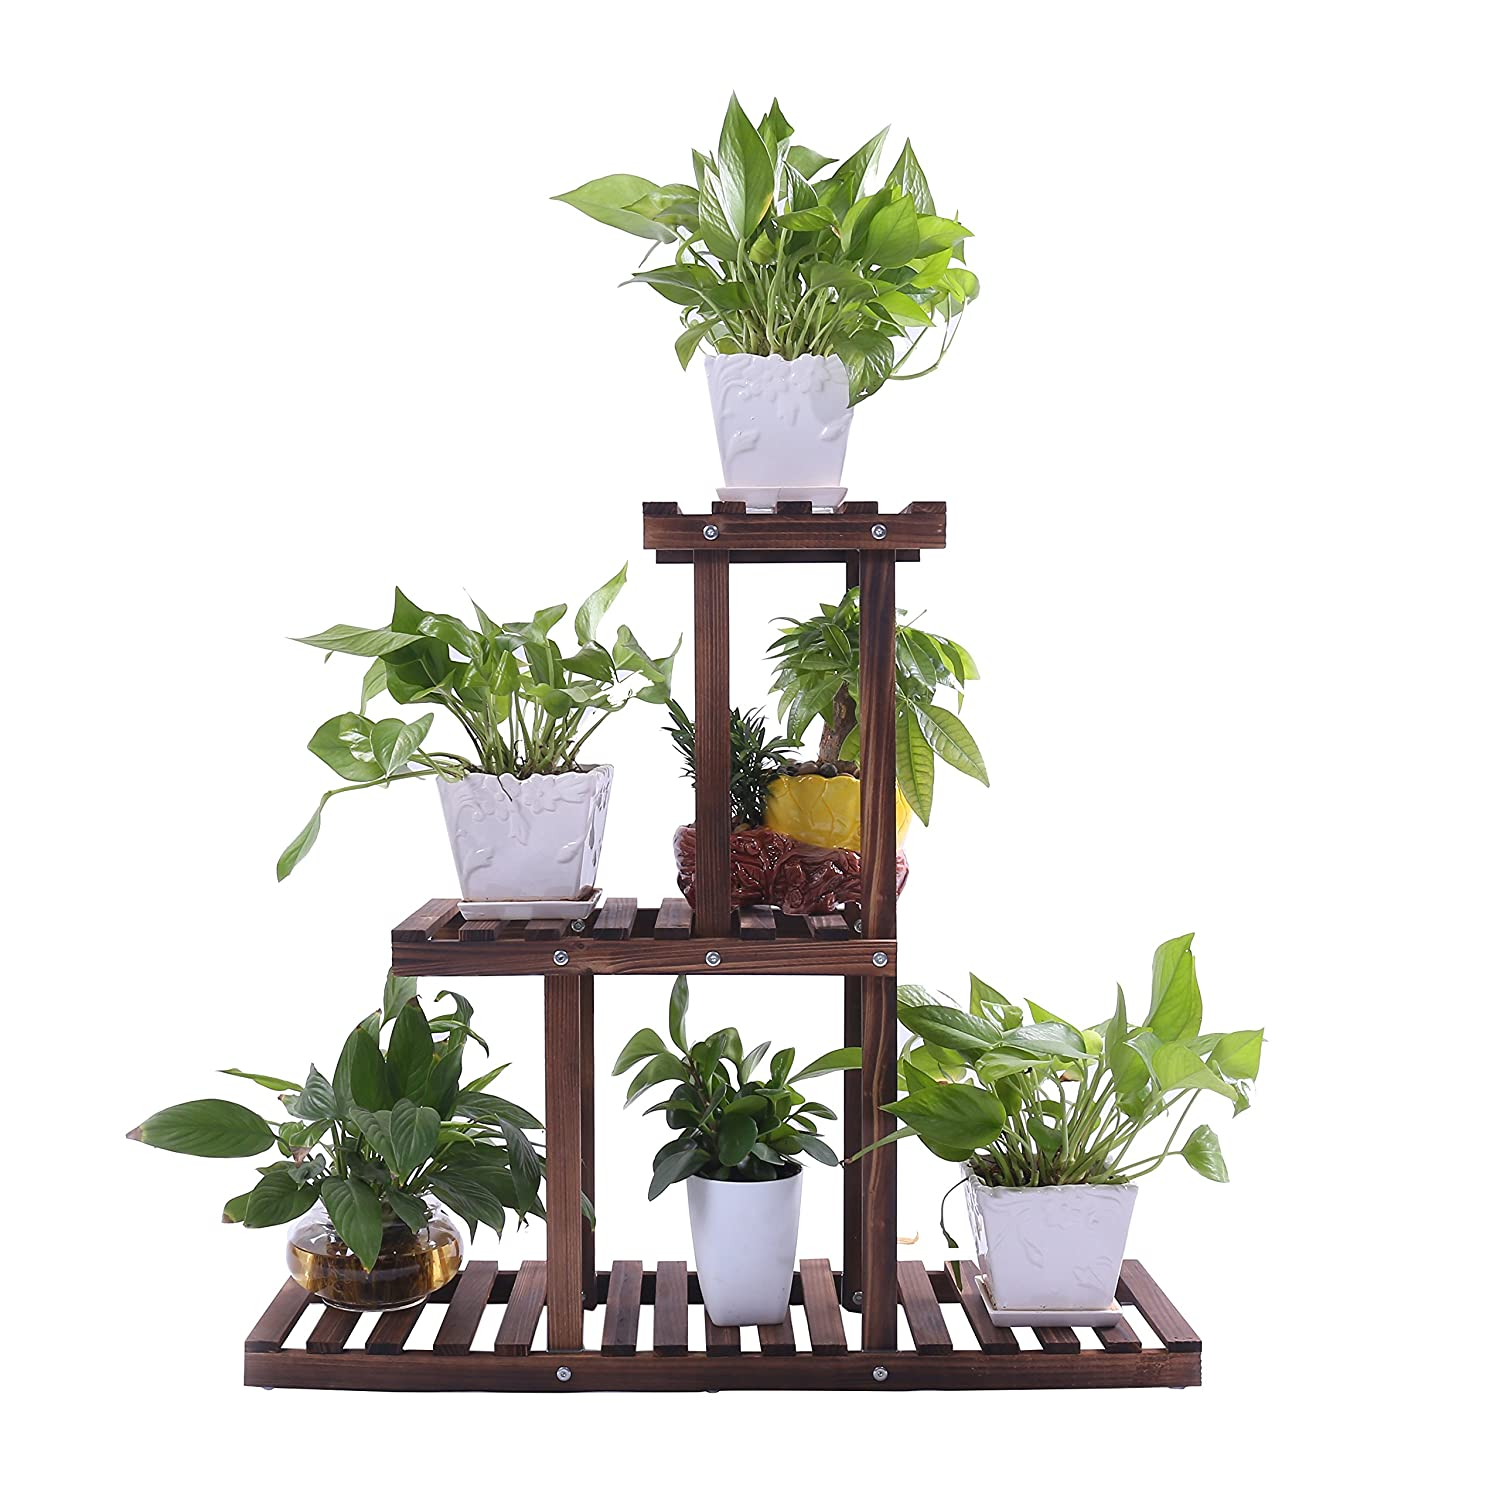 Ufine Wood Plant Stand Outdoor Indoor 3 Tier Vertical Carbonized Multiple Planter Holder Flower Ladder Stair Shelf Garden Balcony Patio Corner Pot Display Storage Rack (Space Saving,Light Weight)